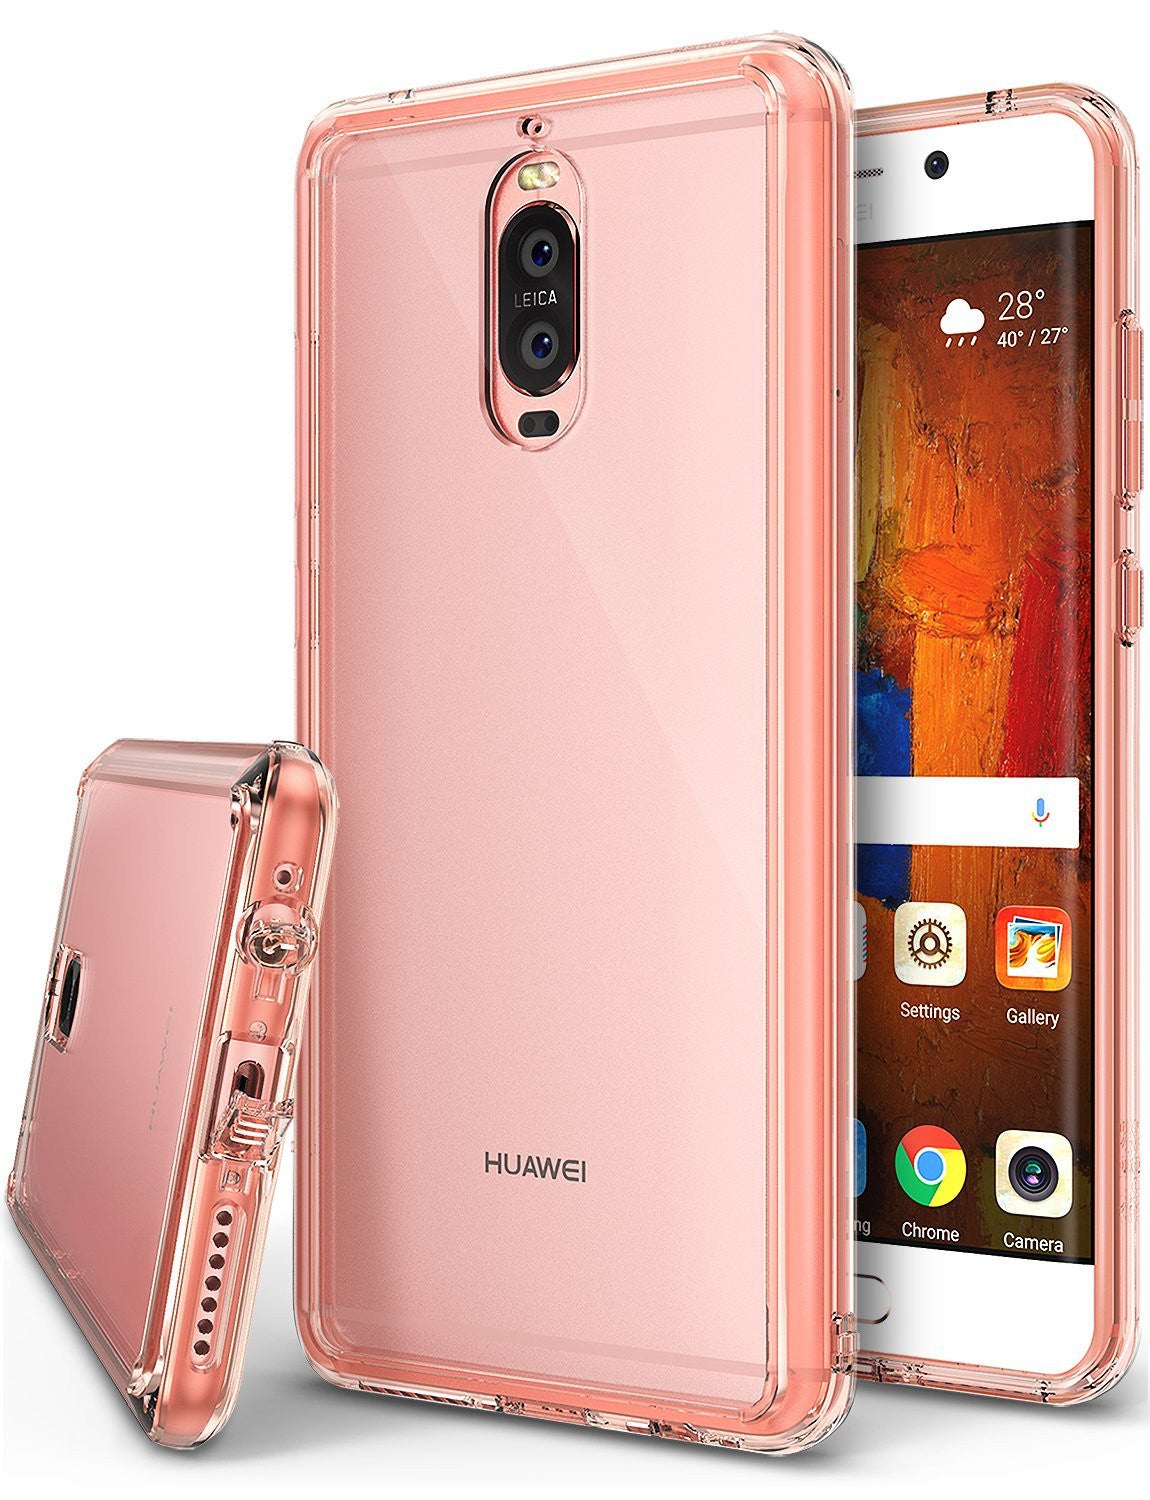 huawei mate 9 pro case ringke fusion case crystal clear pc back tpu bumper case rose gold crystal